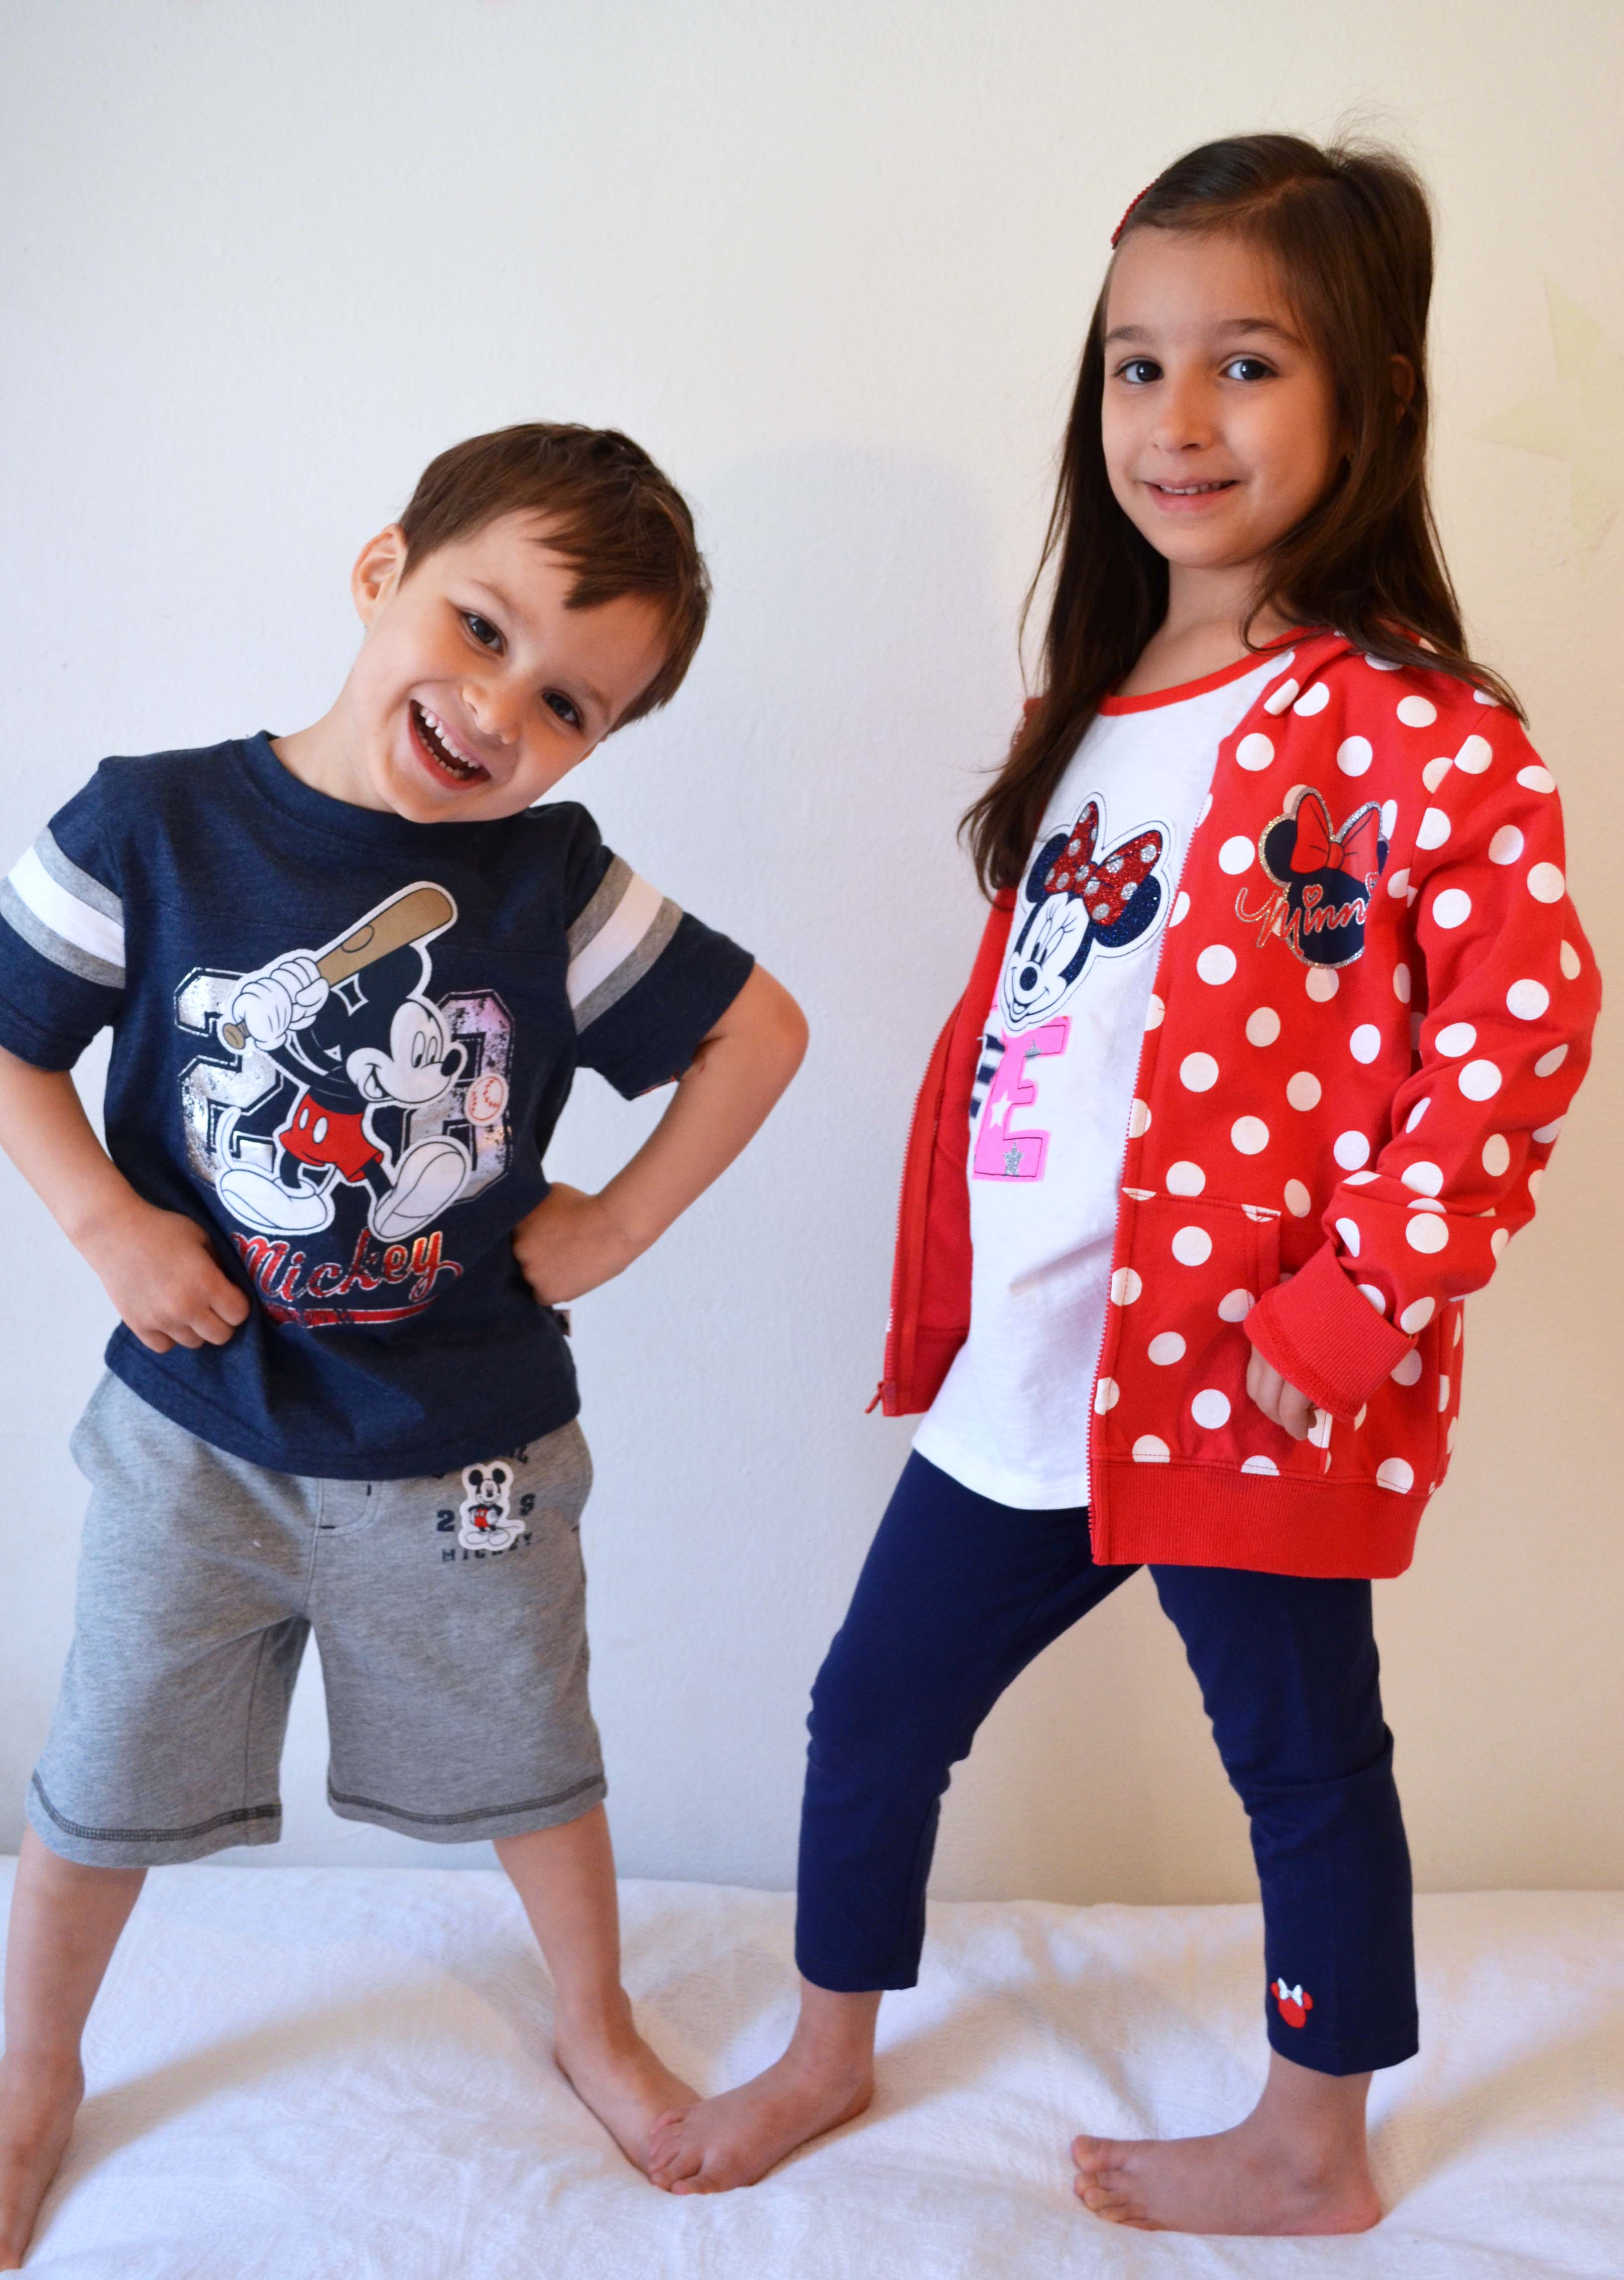 60% off Outerwear for Kids. Select Styles. $10 & Under Urban Pipeline & SO Clothes for Kids. Select Styles. 25% off or more Under Armour, Nike & Adidas Clothes & Shoes for Kids. Select Styles. $20 & Under Toys & Games.